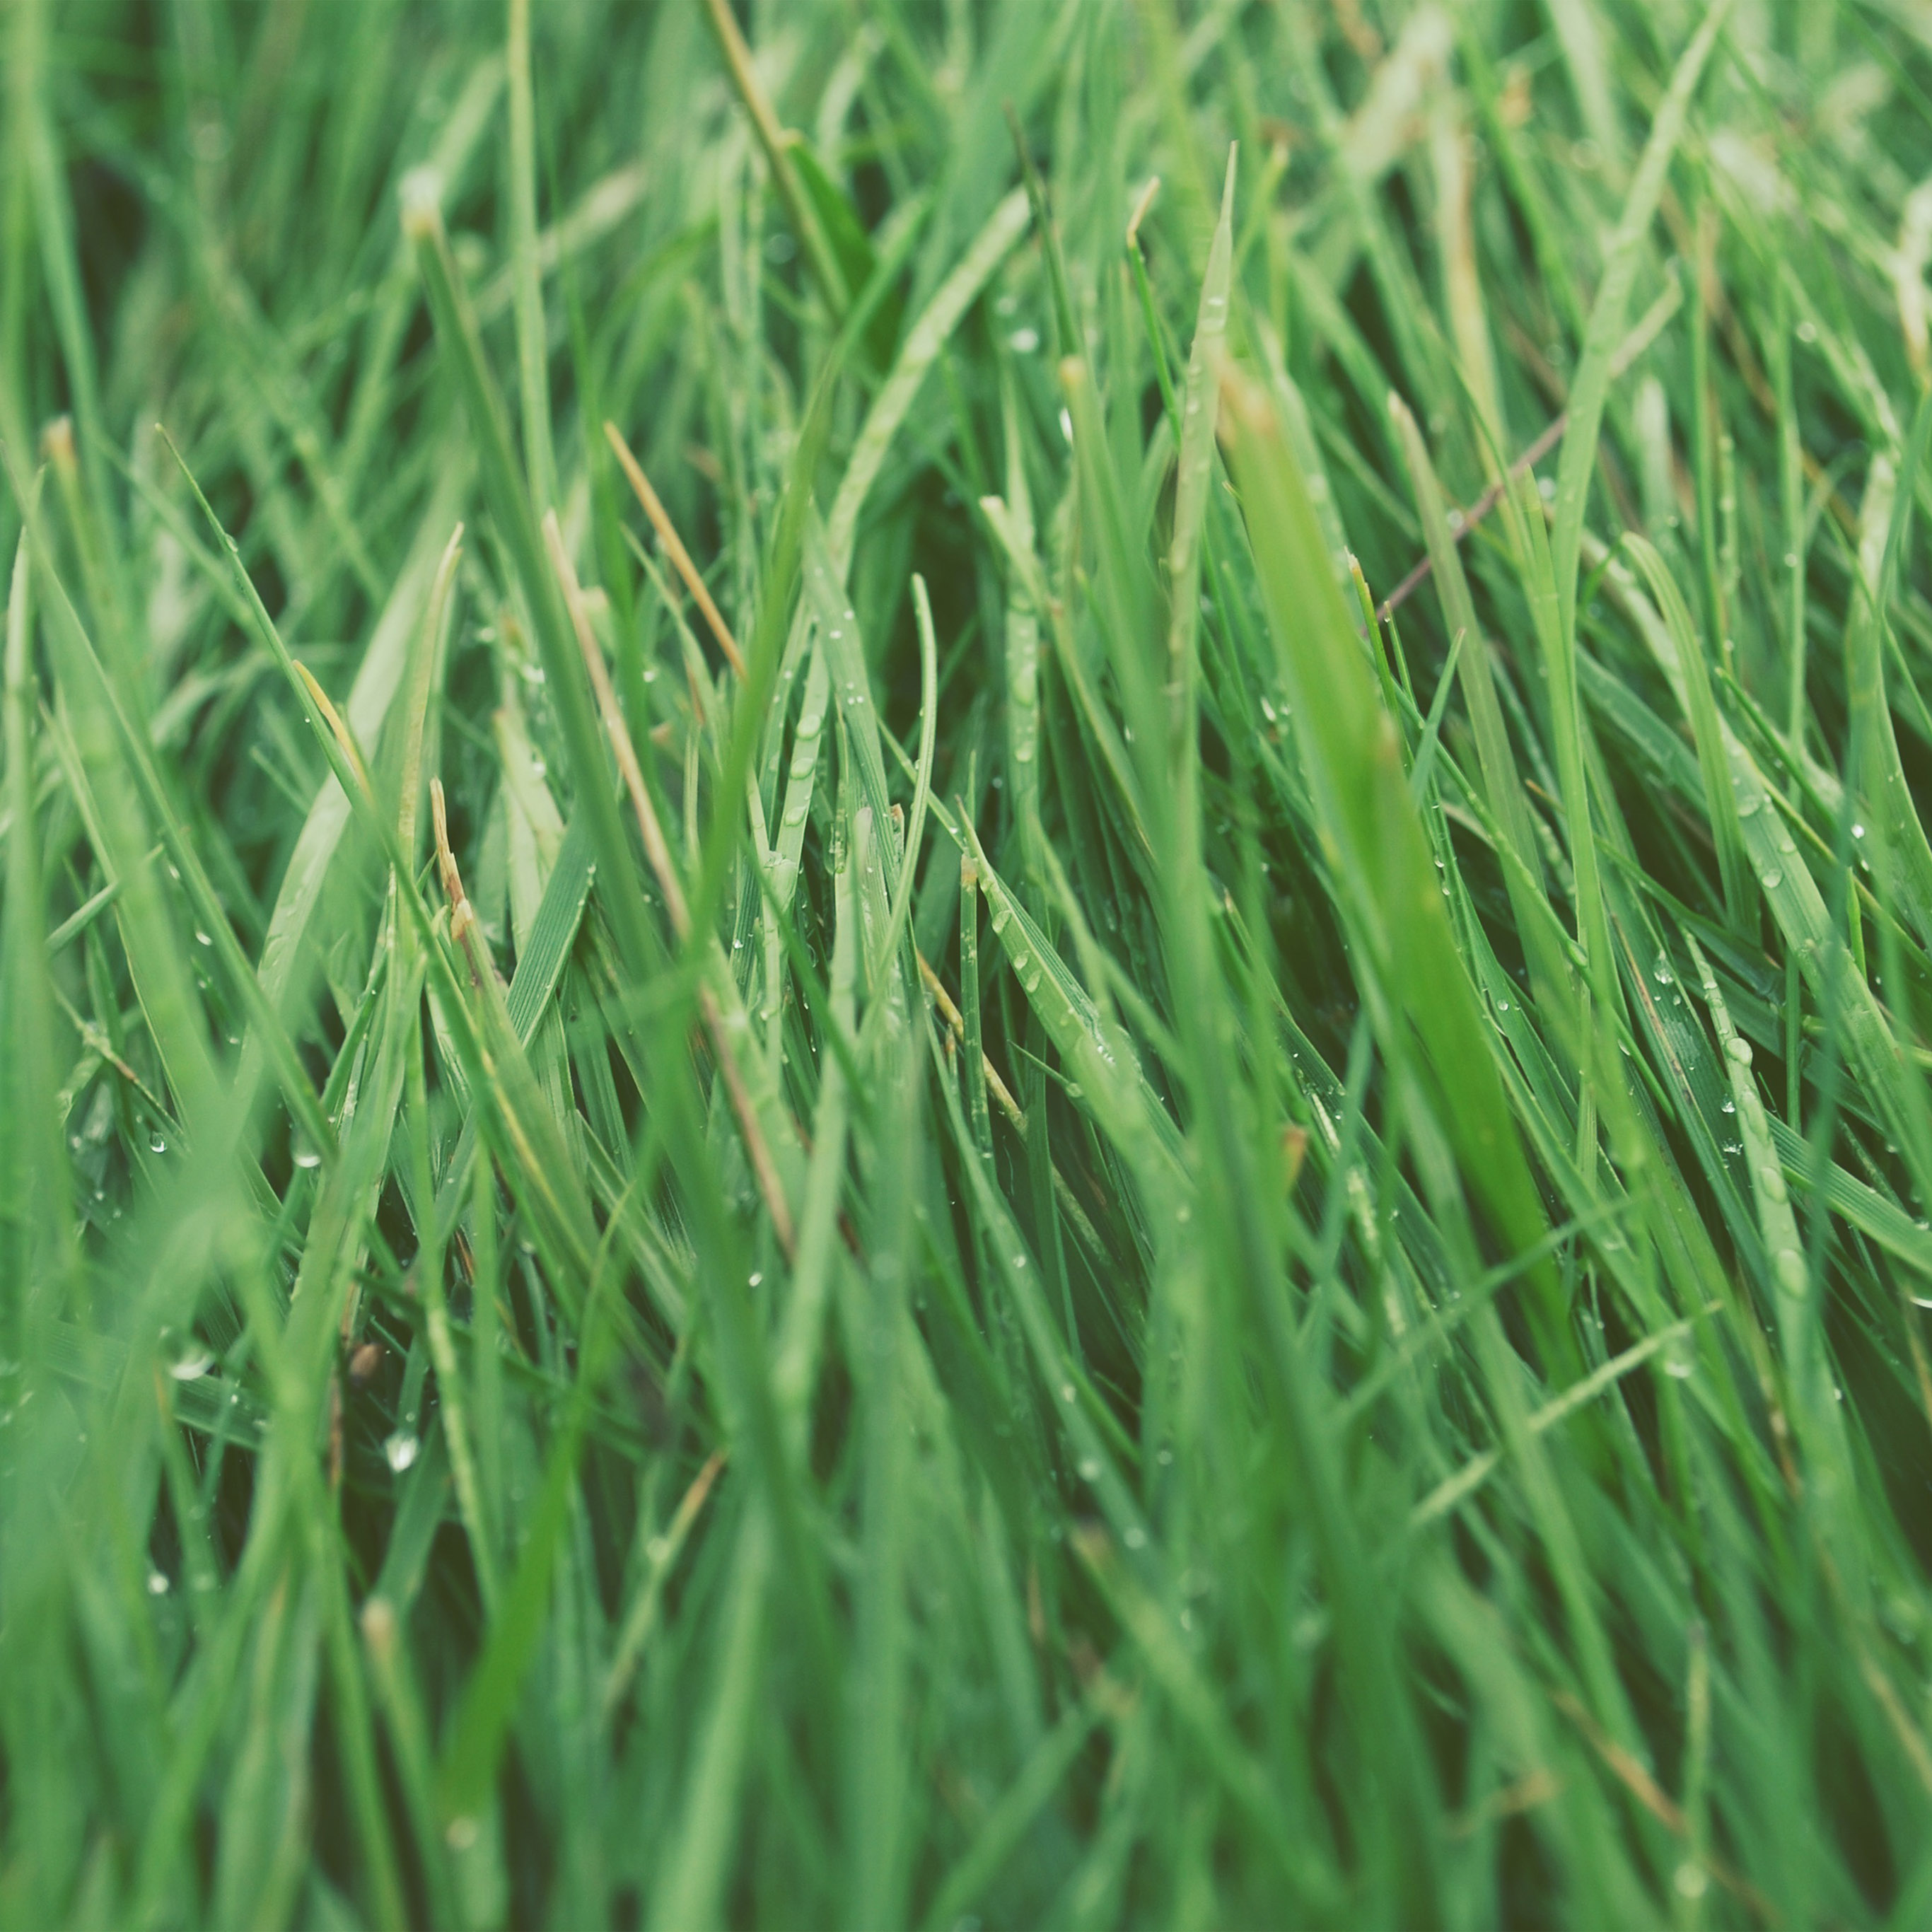 How Stupid Is Our Obsession With Lawns? (Rebroadcast)